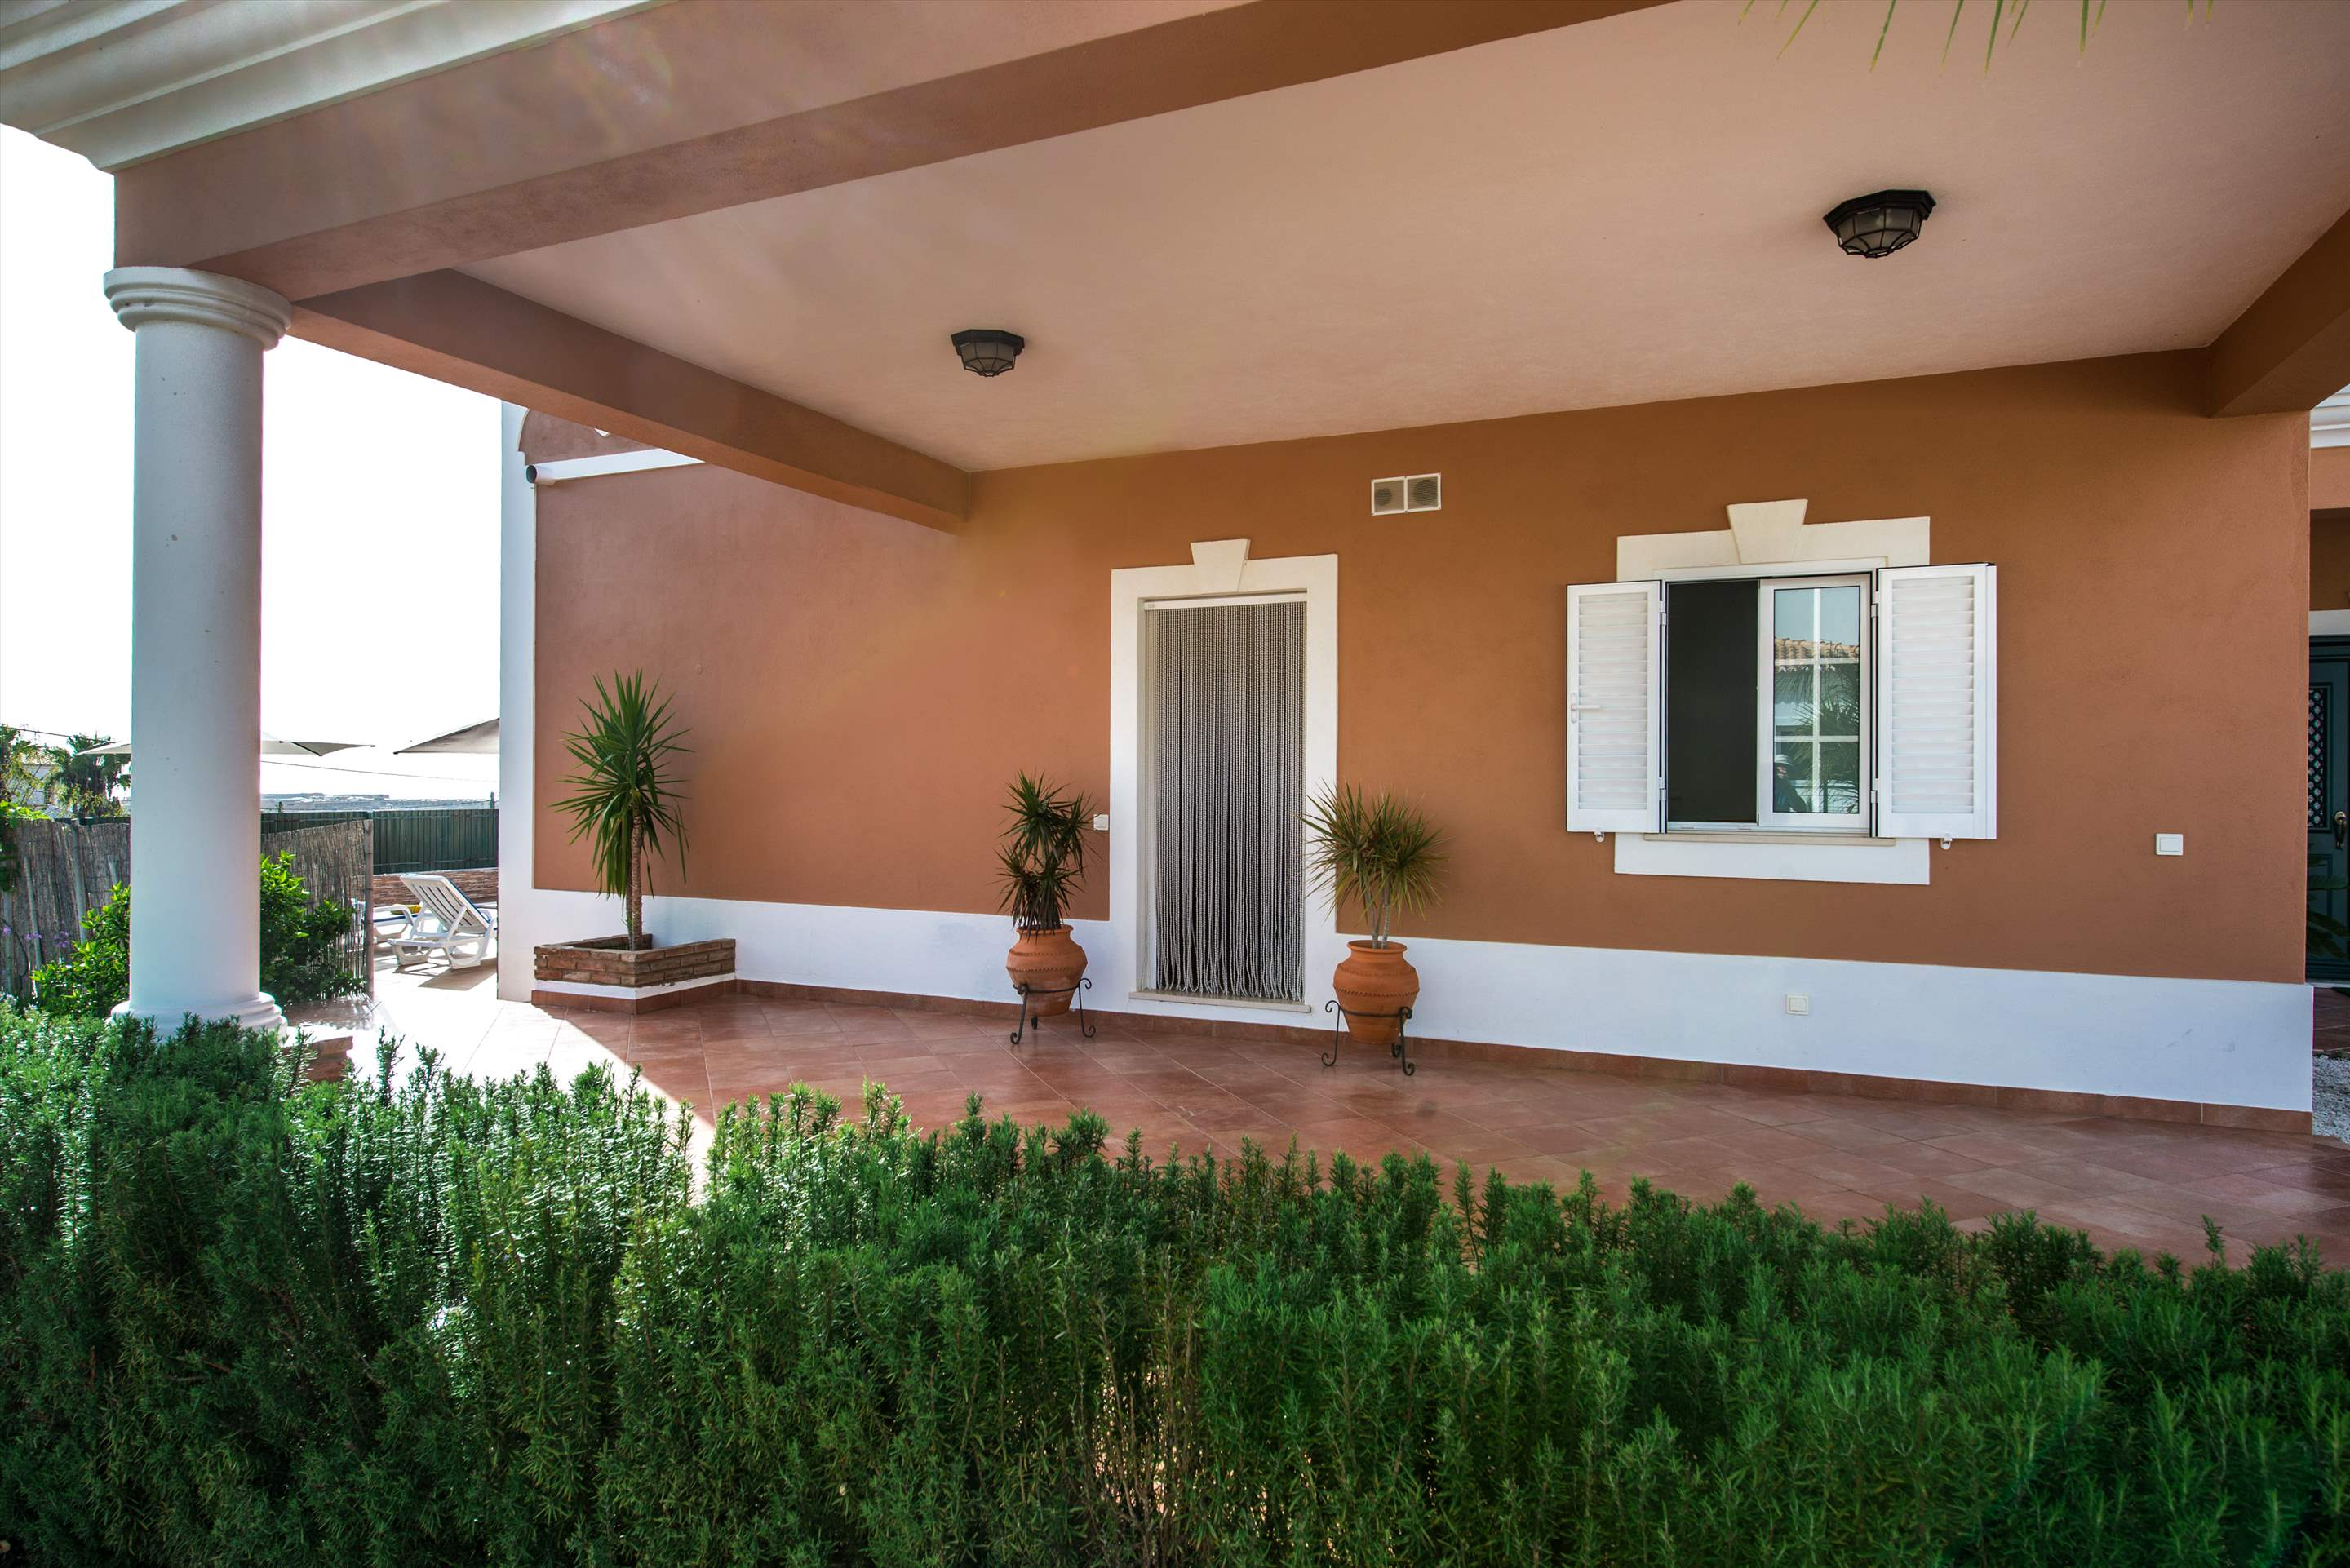 Casa Laura, 3 bedroom villa in Gale, Vale da Parra and Guia, Algarve Photo #25